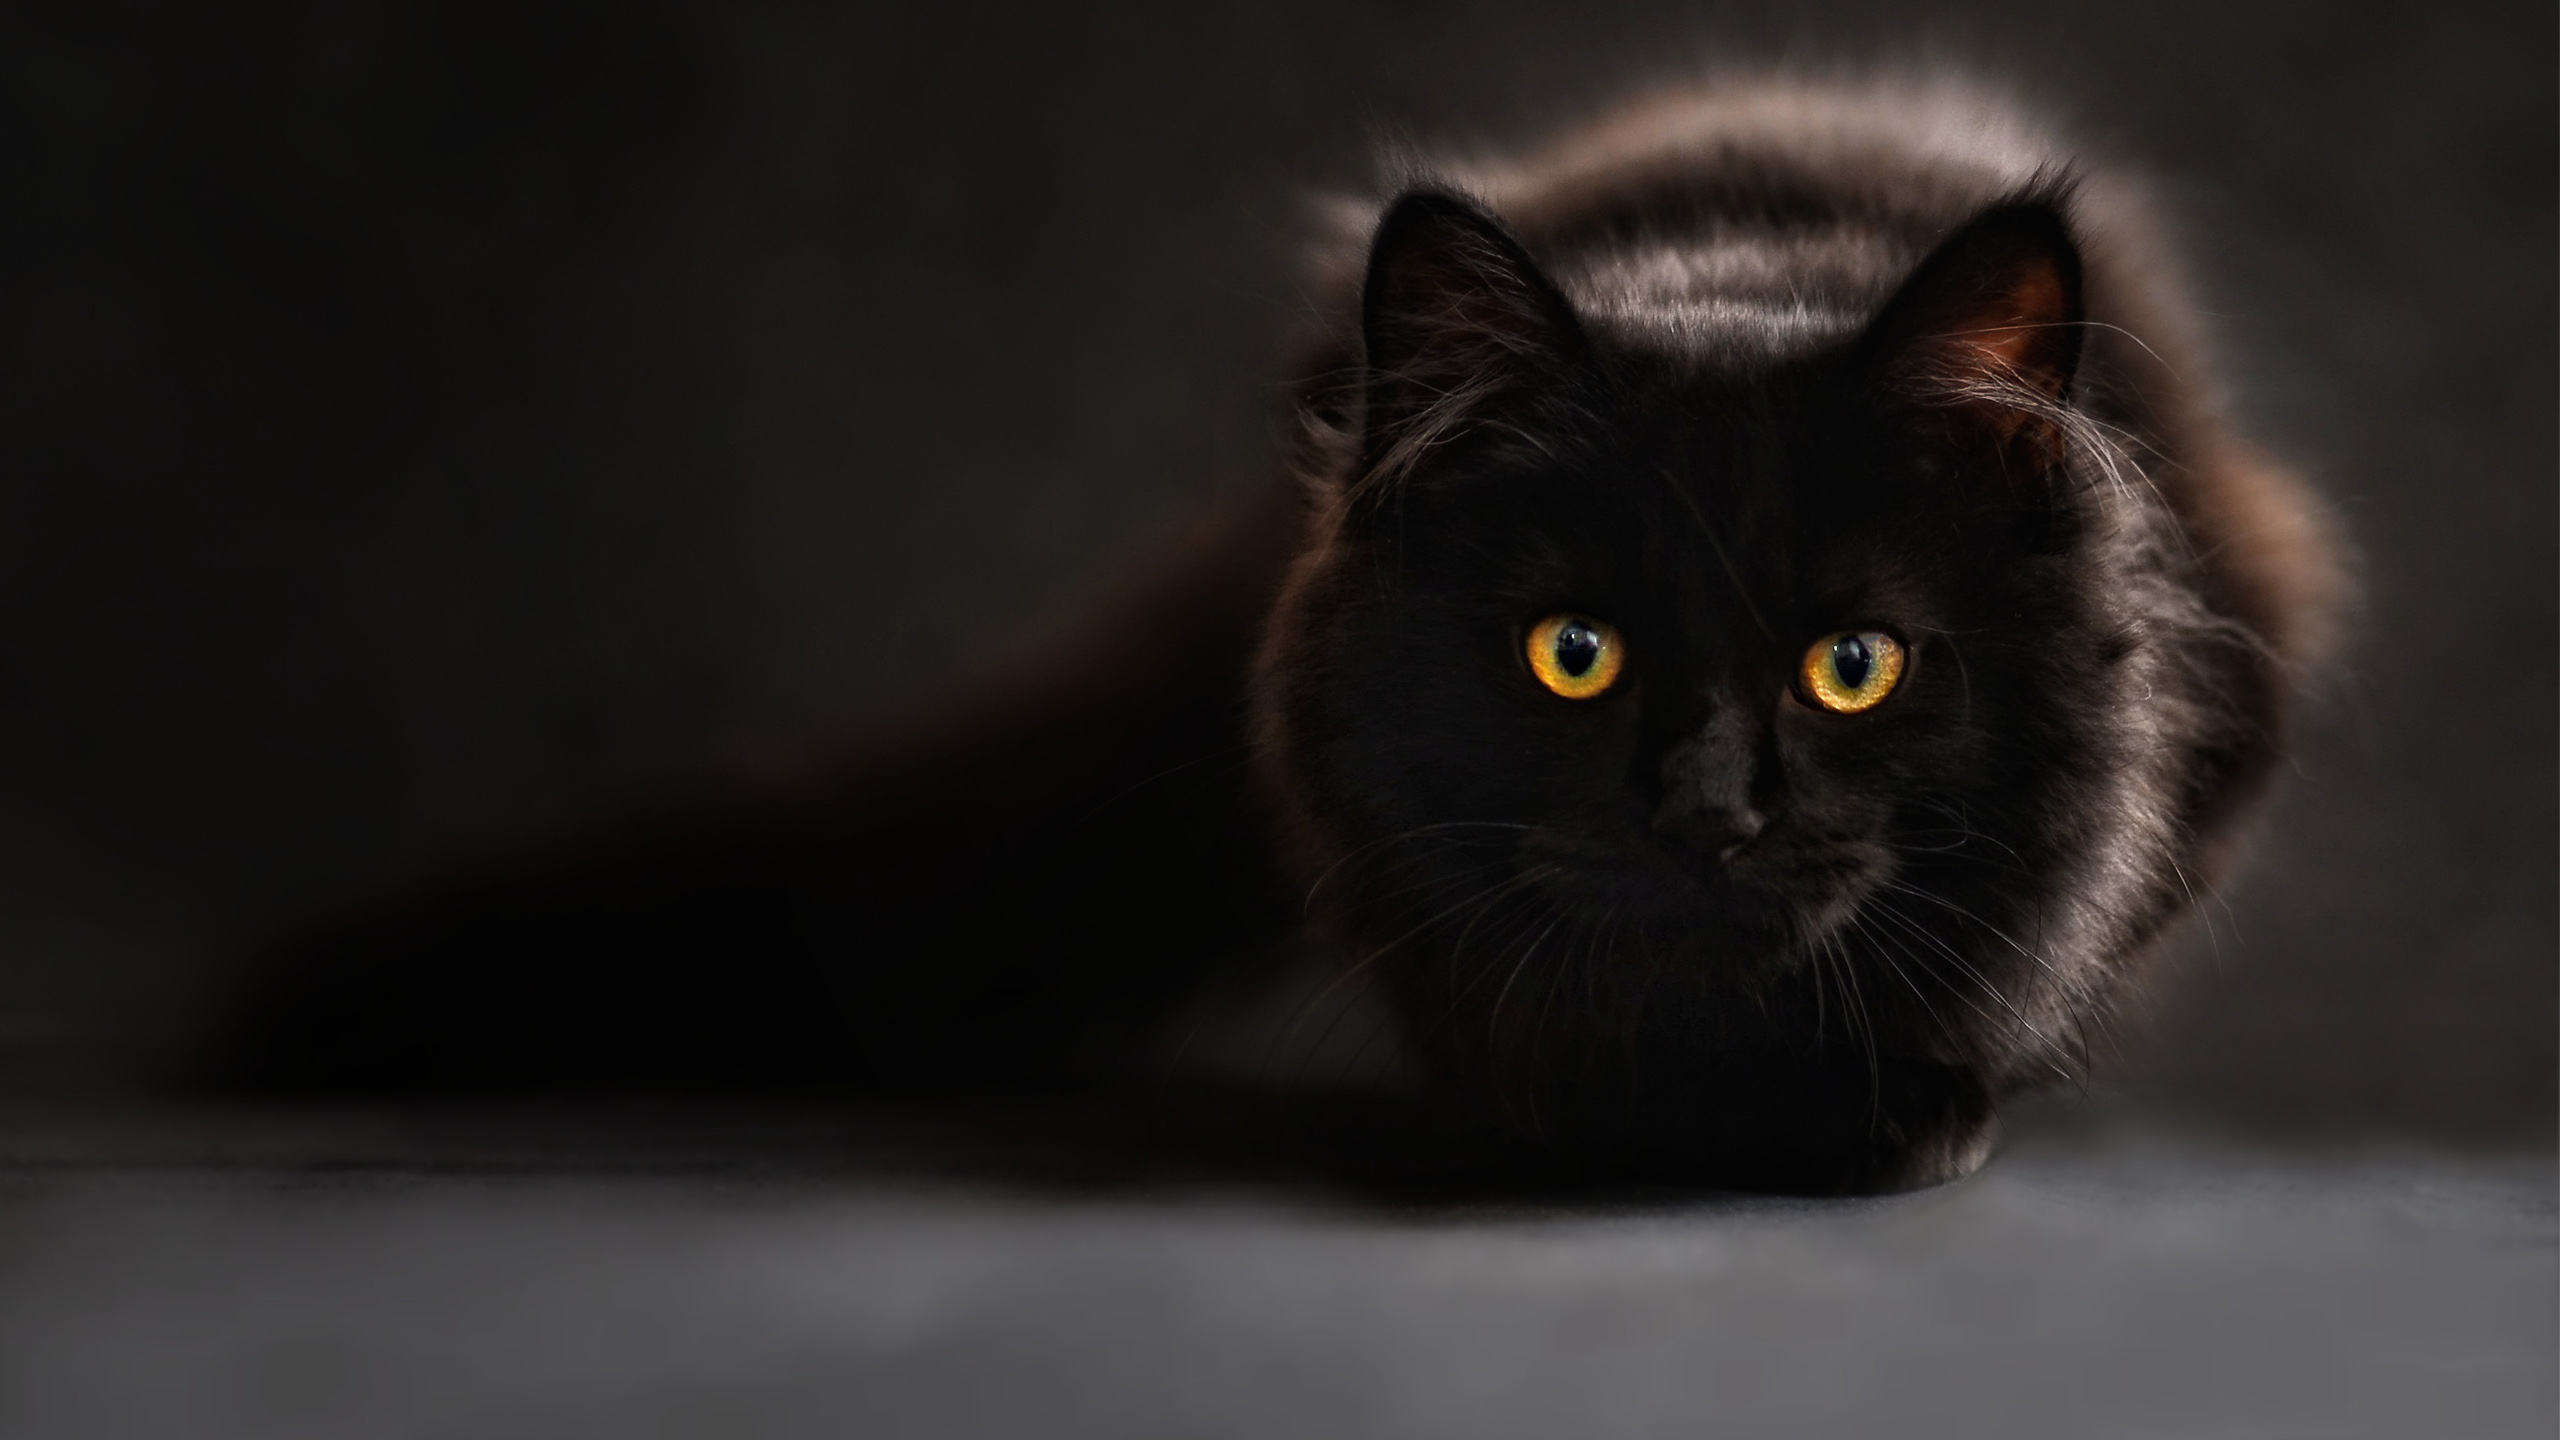 49 Black Cat Wallpaper For Android On Wallpapersafari